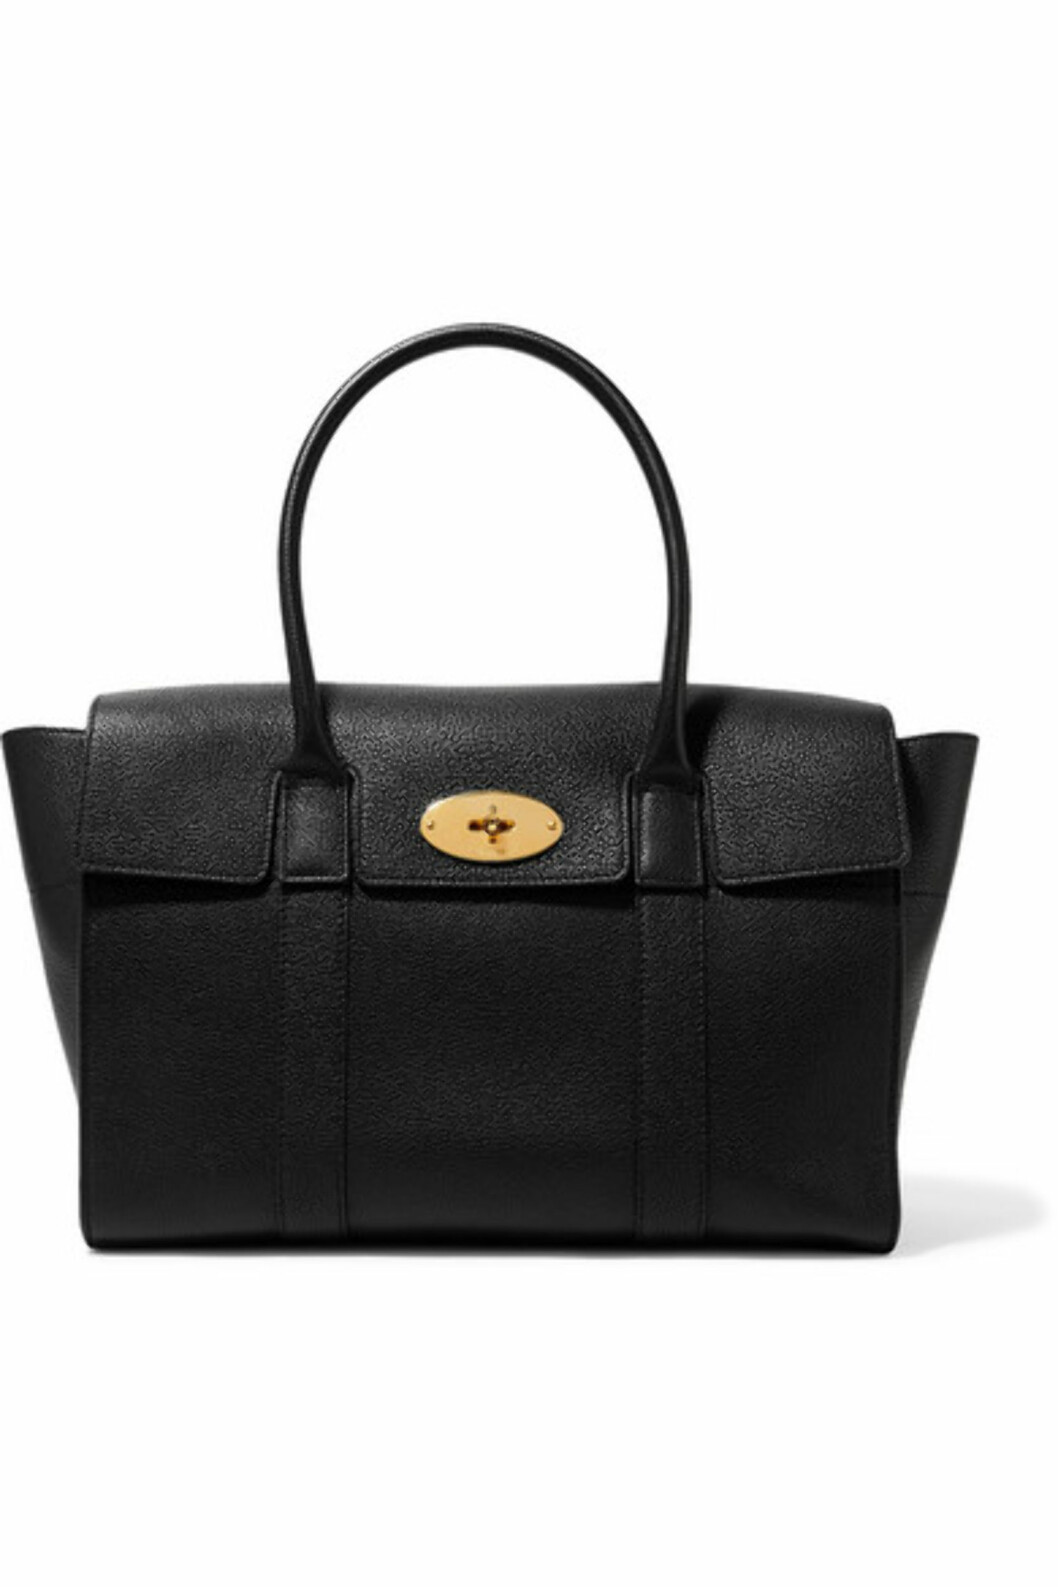 <strong>Veske fra Mulberry |9000,-| https:</strong>//www.net-a-porter.com/no/en/product/915299/mulberry/the-bayswater-textured-leather-tote